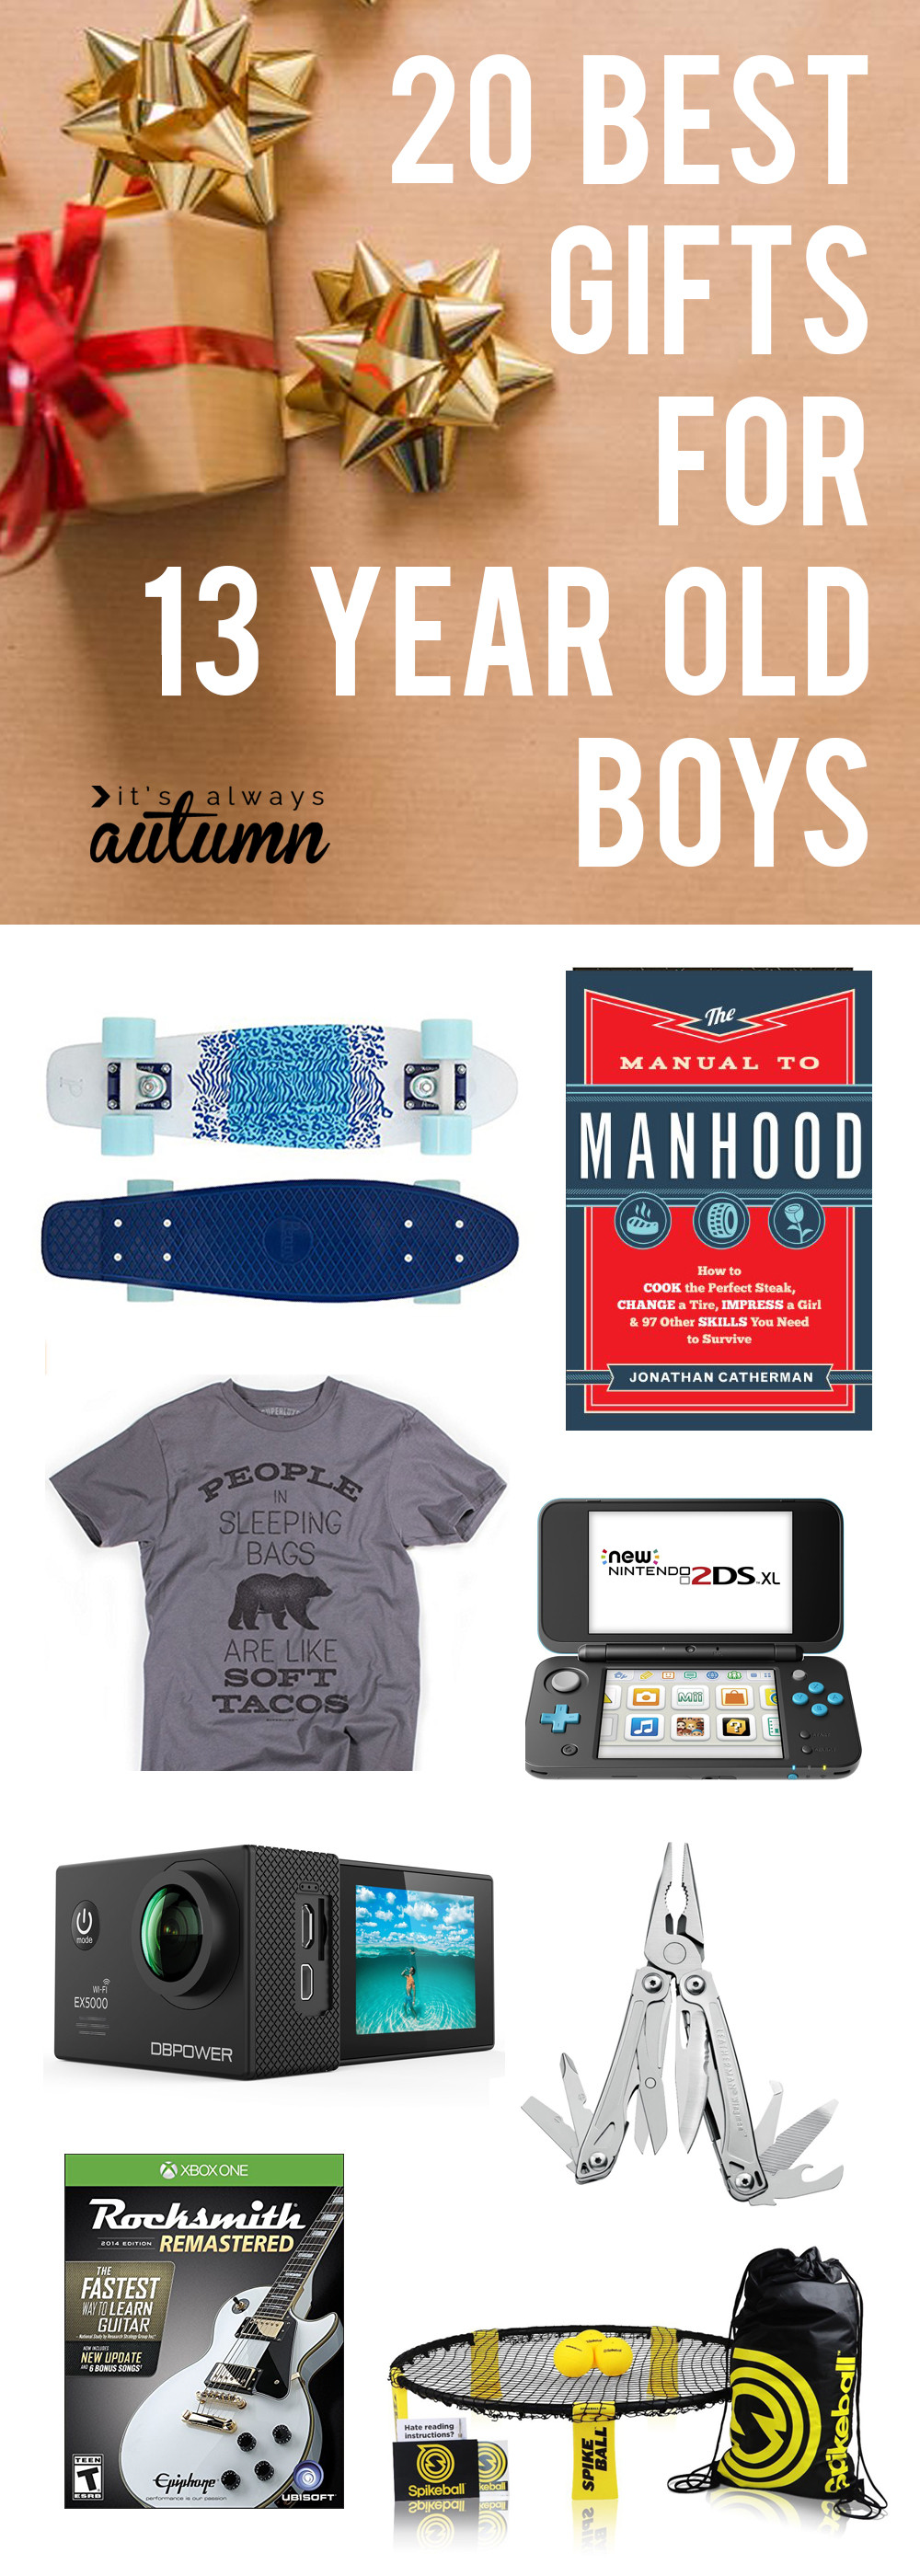 Best ideas about Gift Ideas For 14 Year Old Boy . Save or Pin best Christmas ts for 13 year old boys It s Always Autumn Now.